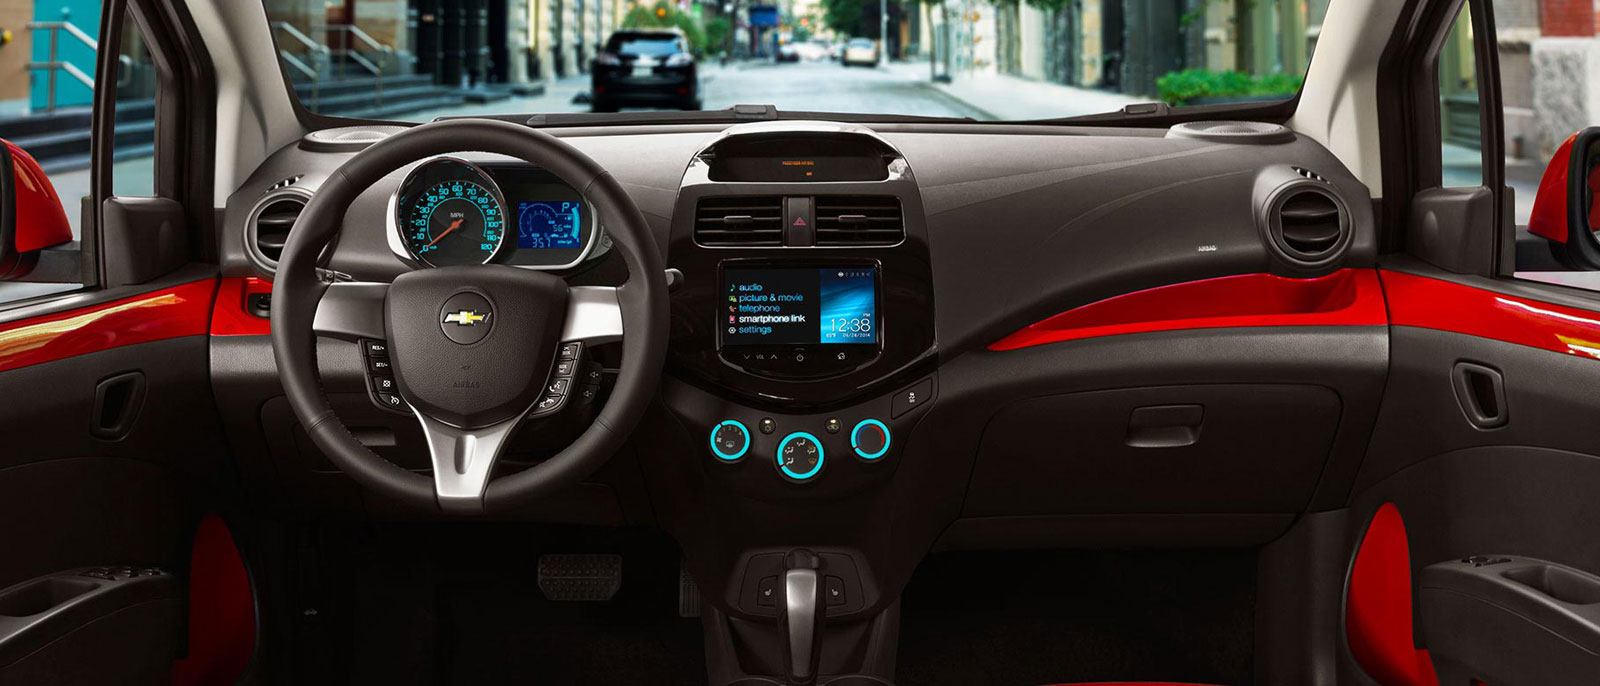 Captivating 2015 Chevrolet Spark Interior ...